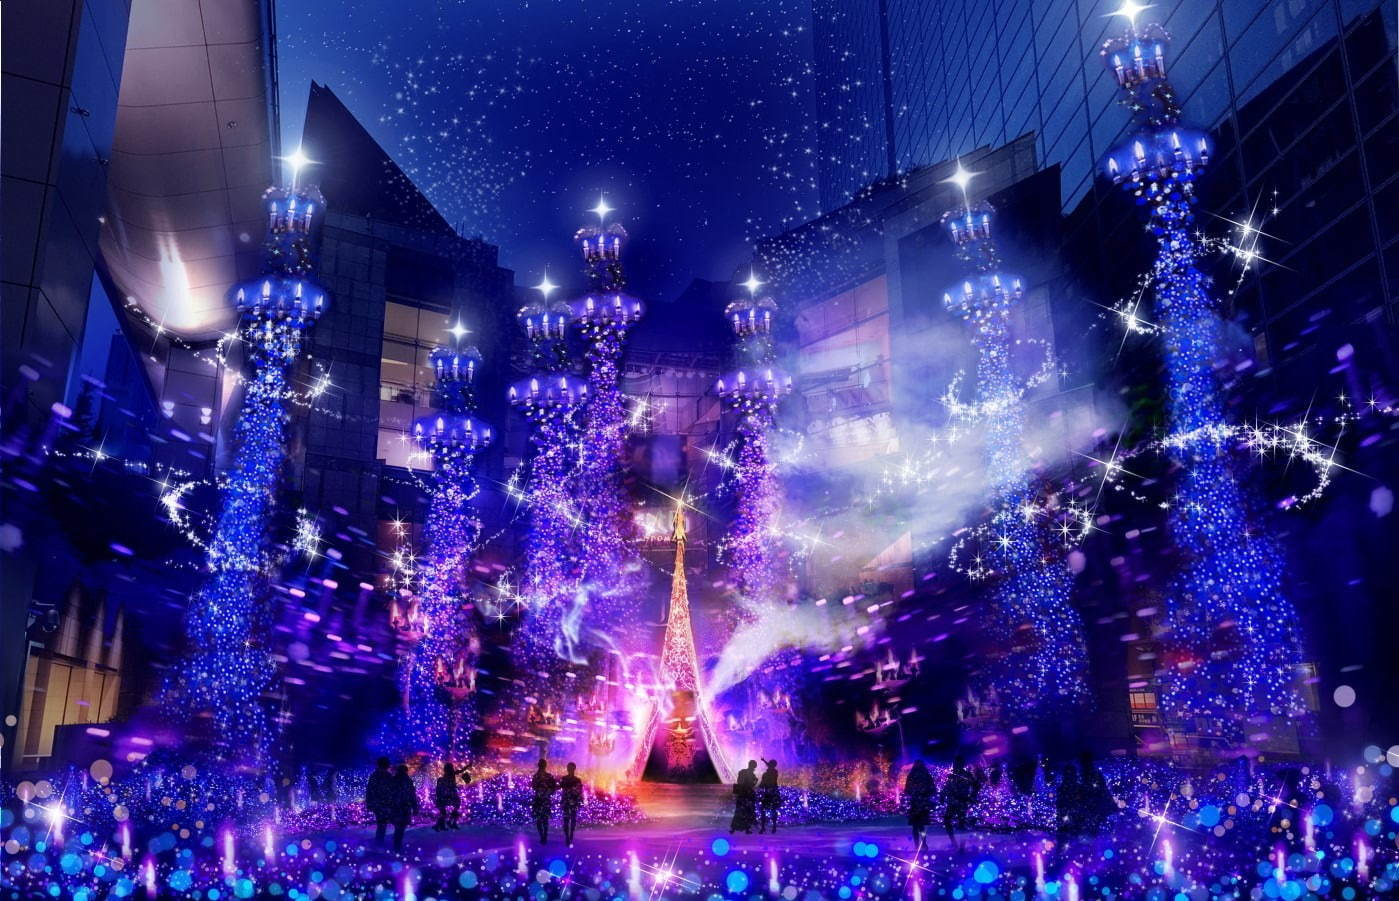 Caretta Shiodome Winter Illumination 2019–2020